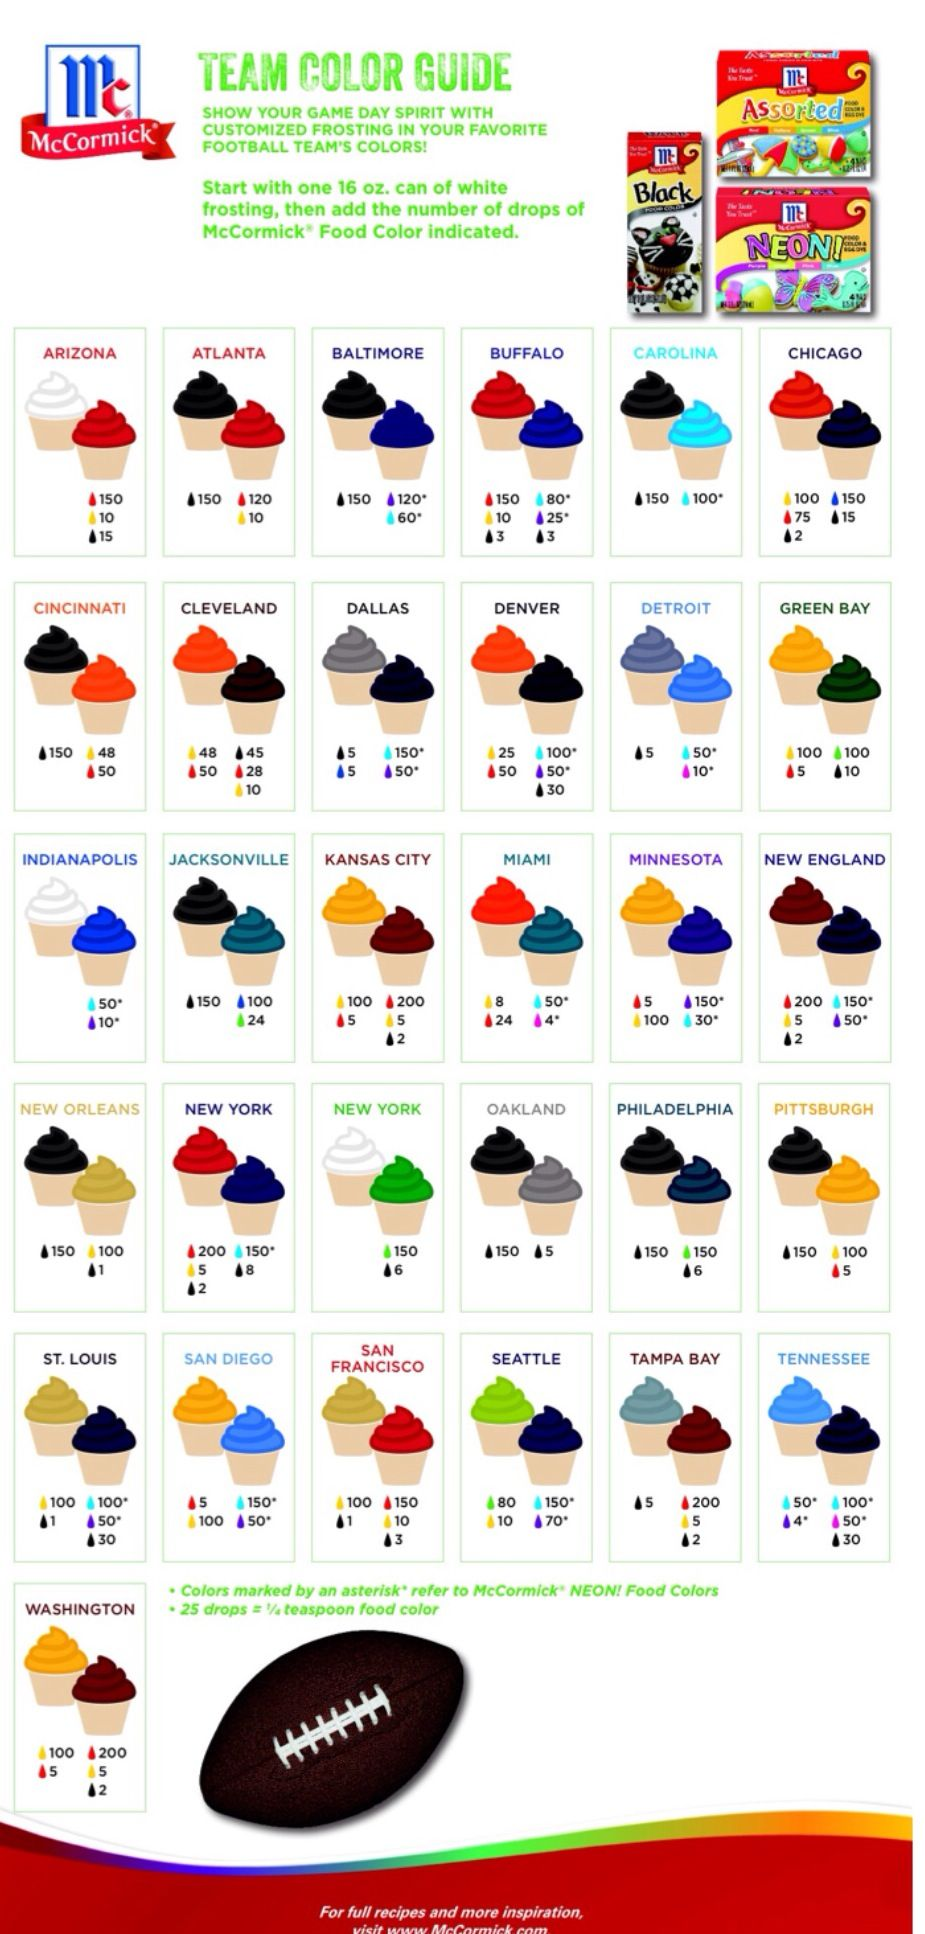 Nfl frosting color chart by mccormick this makes me chuckle need baseball also rh pinterest